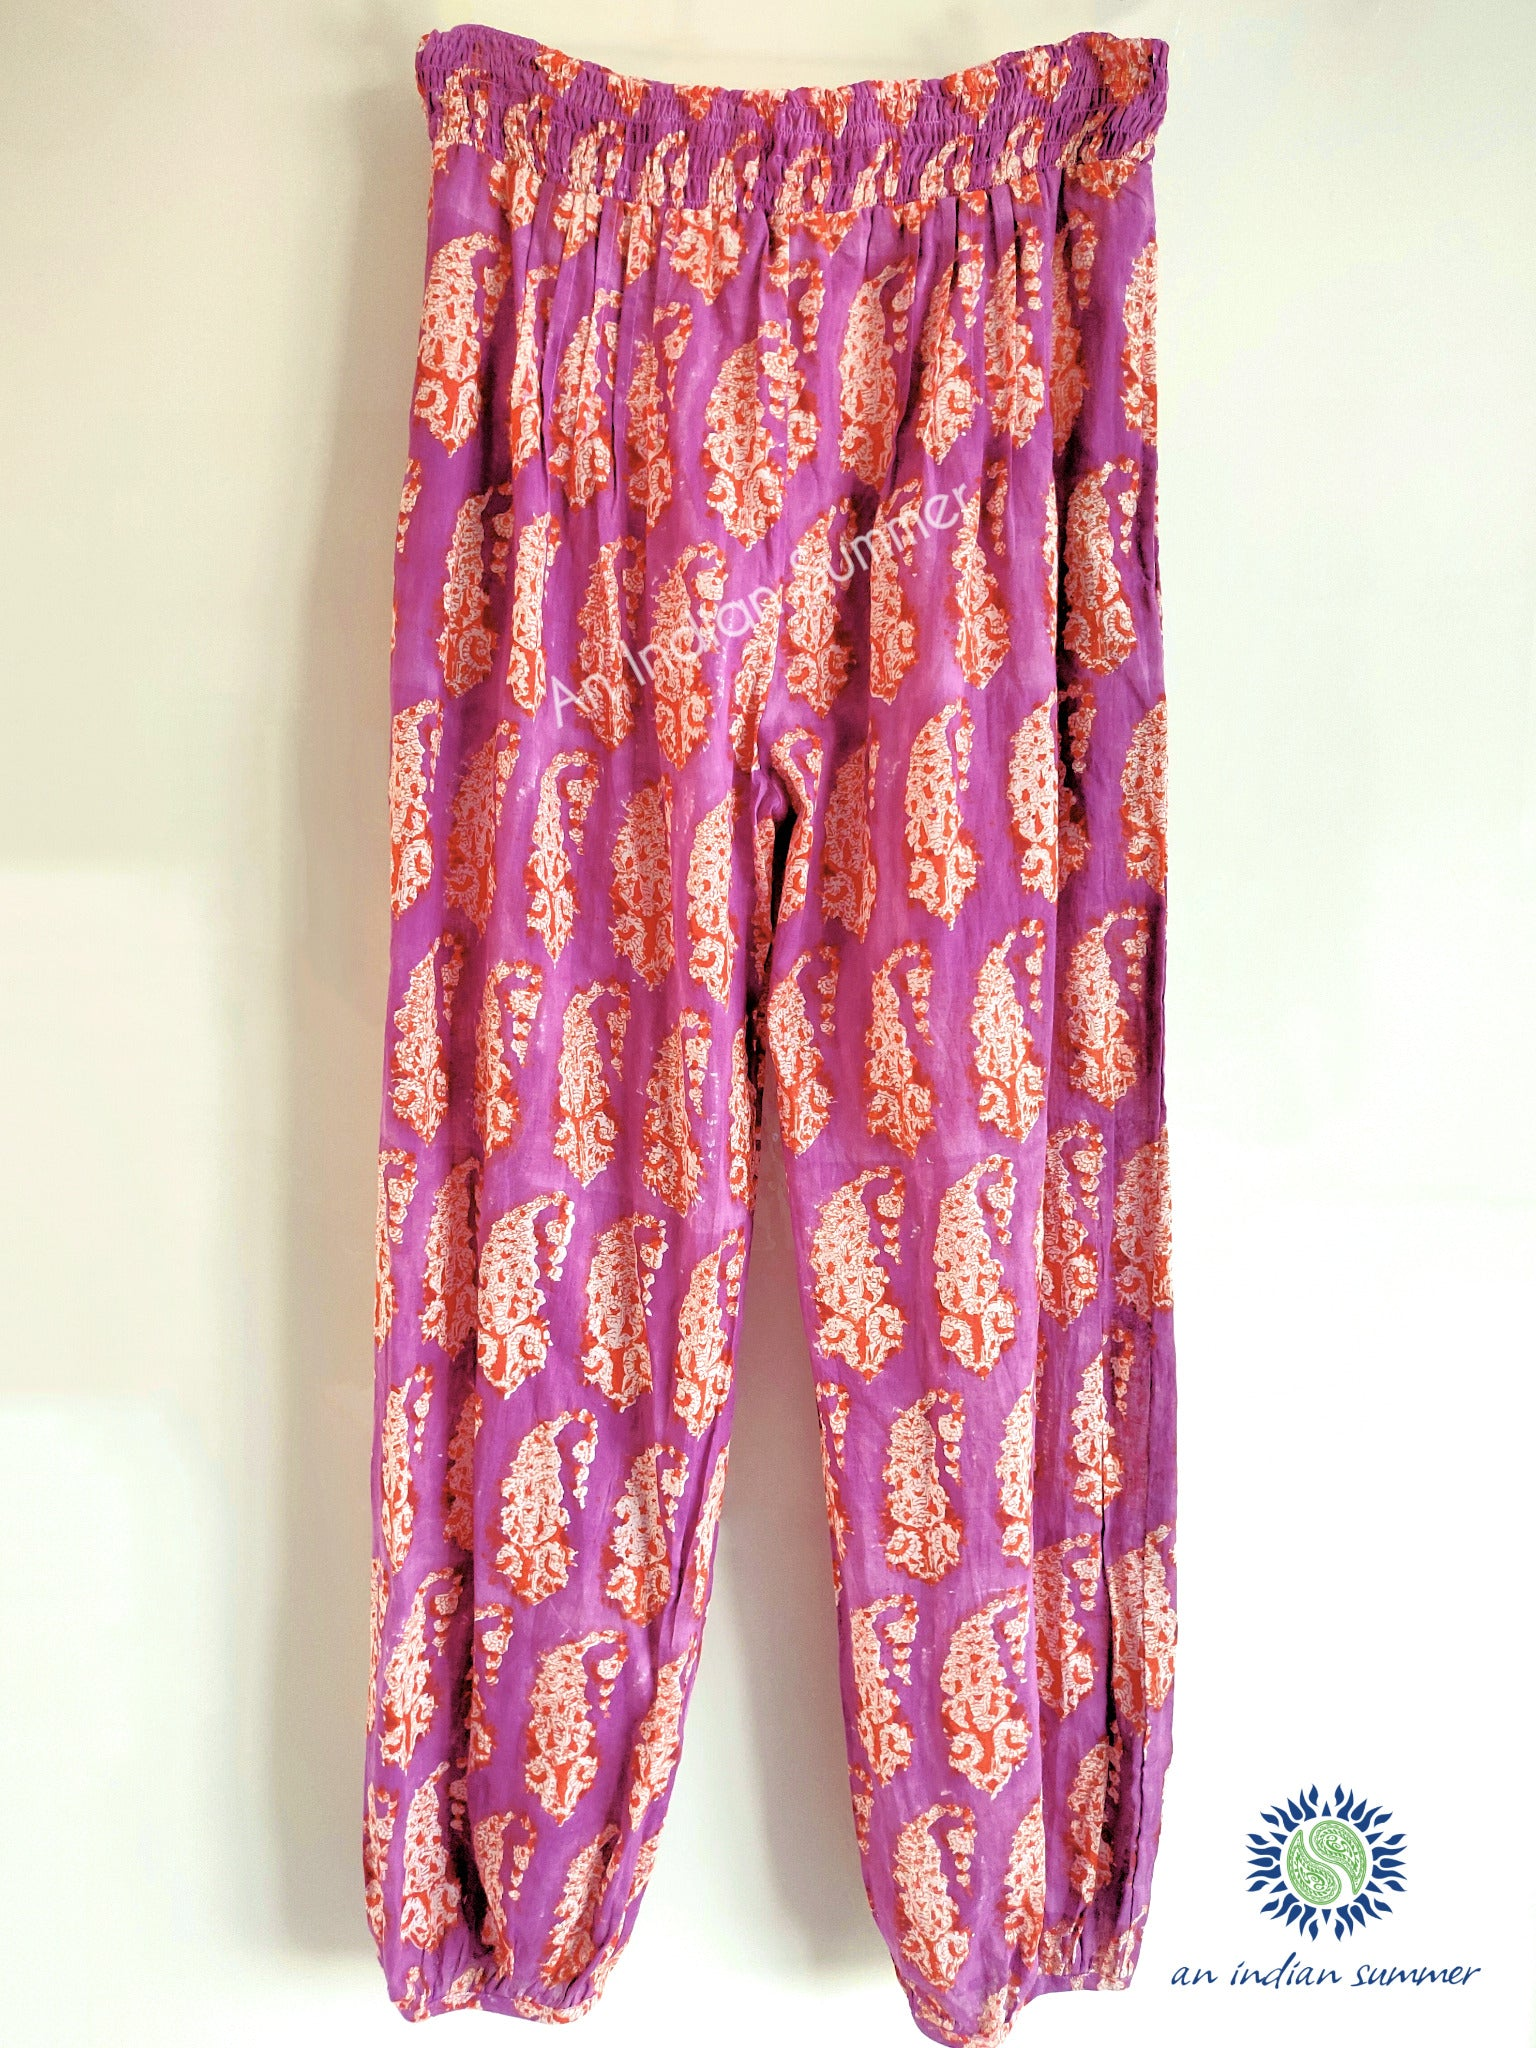 Paisley Harem Pants | Purple & Orange | Paisley Block Print | Hand Block Printed | Cotton Voile | An Indian Summer | Seasonless Timeless Sustainable Ethical Authentic Artisan Conscious Clothing Lifestyle Brand